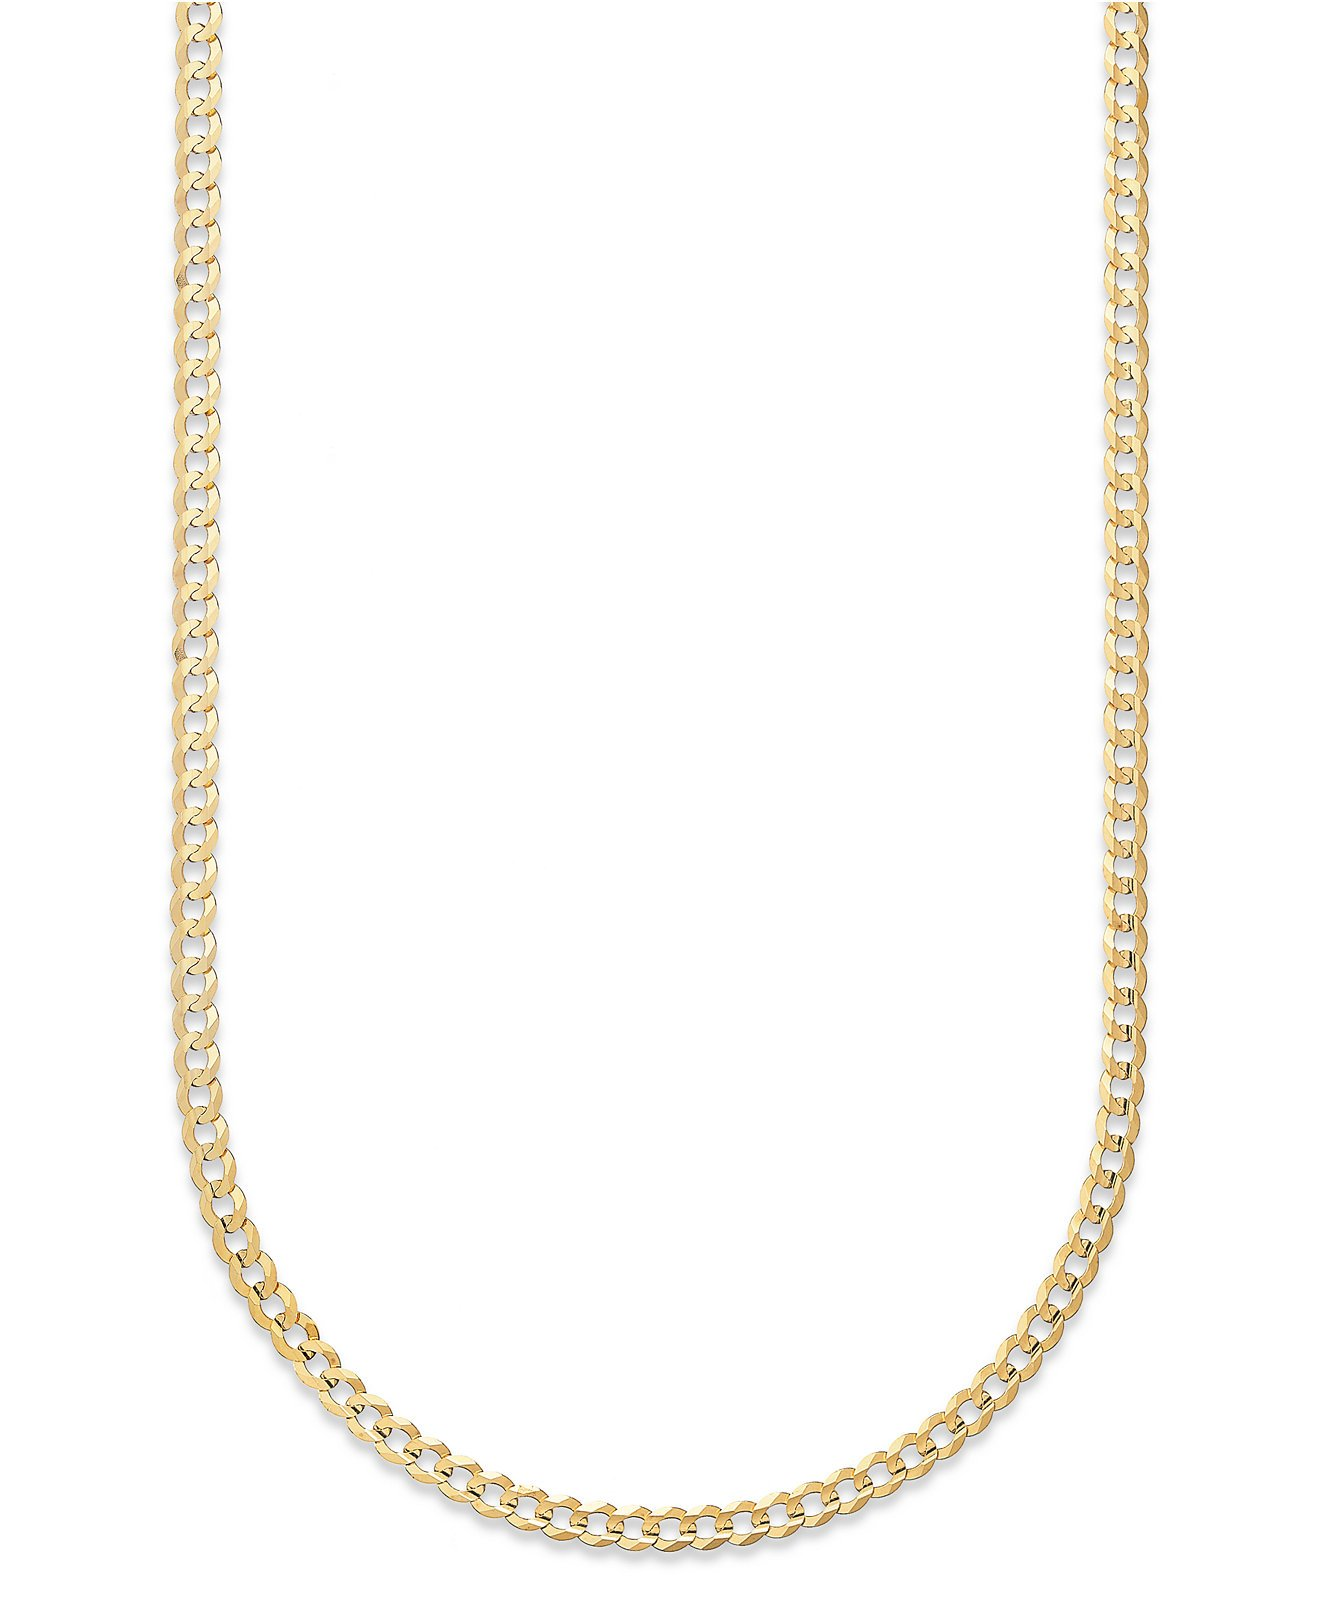 14K Solid Yellow Gold 1.5mm Cuban Curb Link Chain Necklace- Made in Italy- 22''